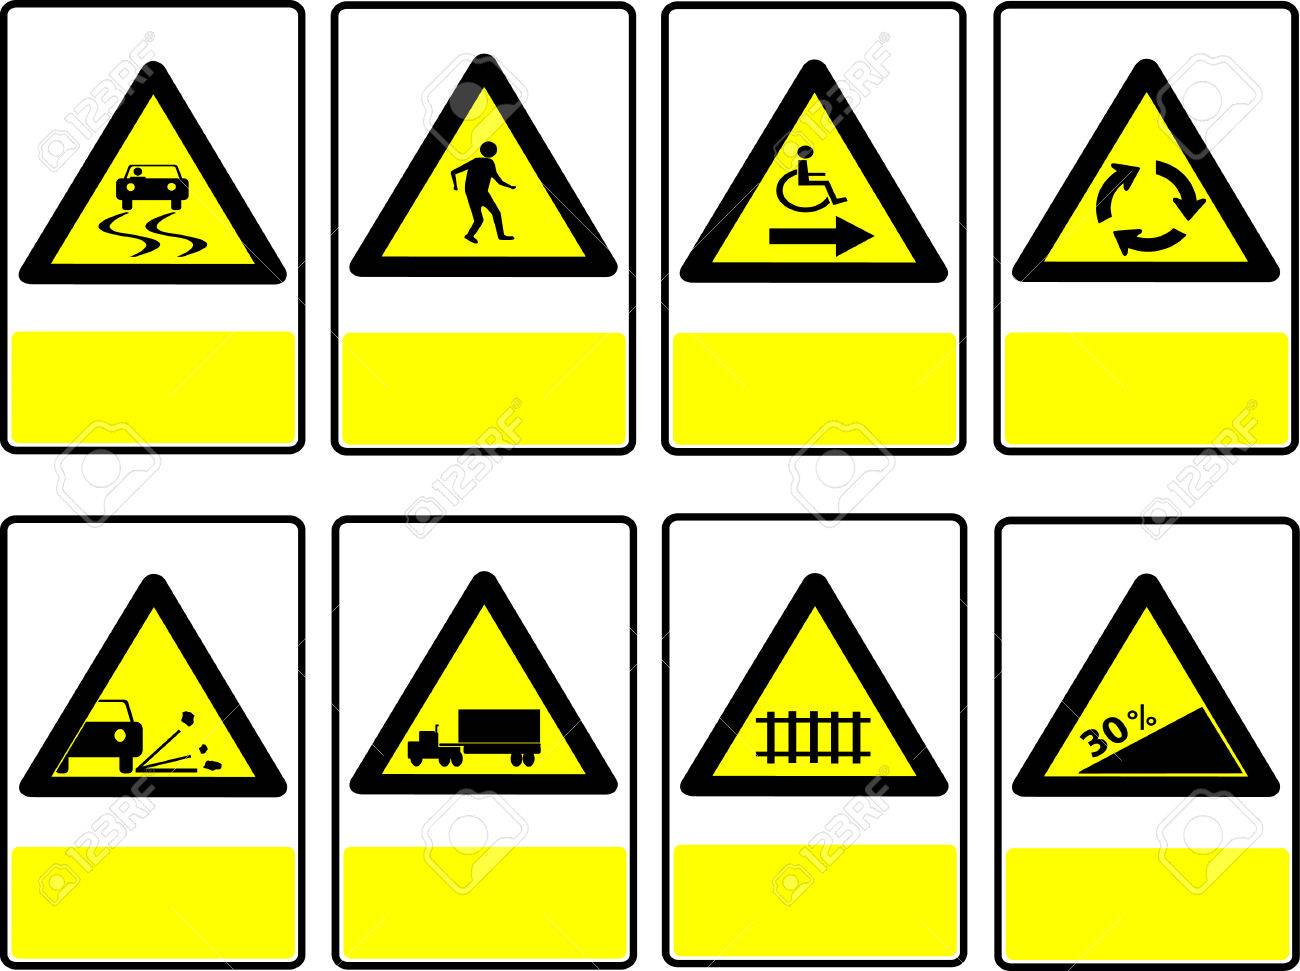 Road Signs Yellow Box Black Triangle